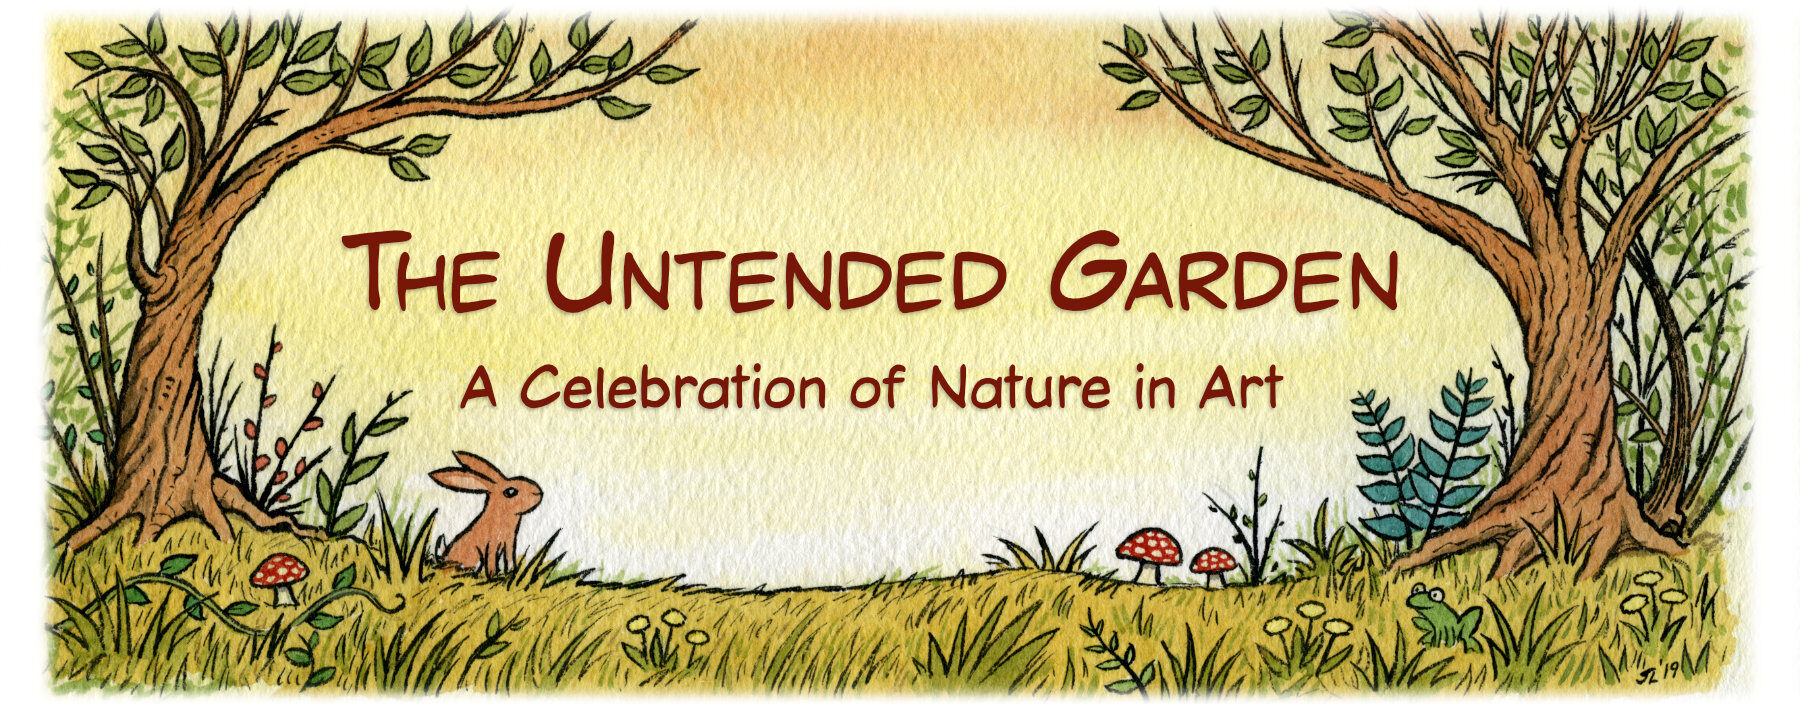 The Untended Garden – a blog about art and nature